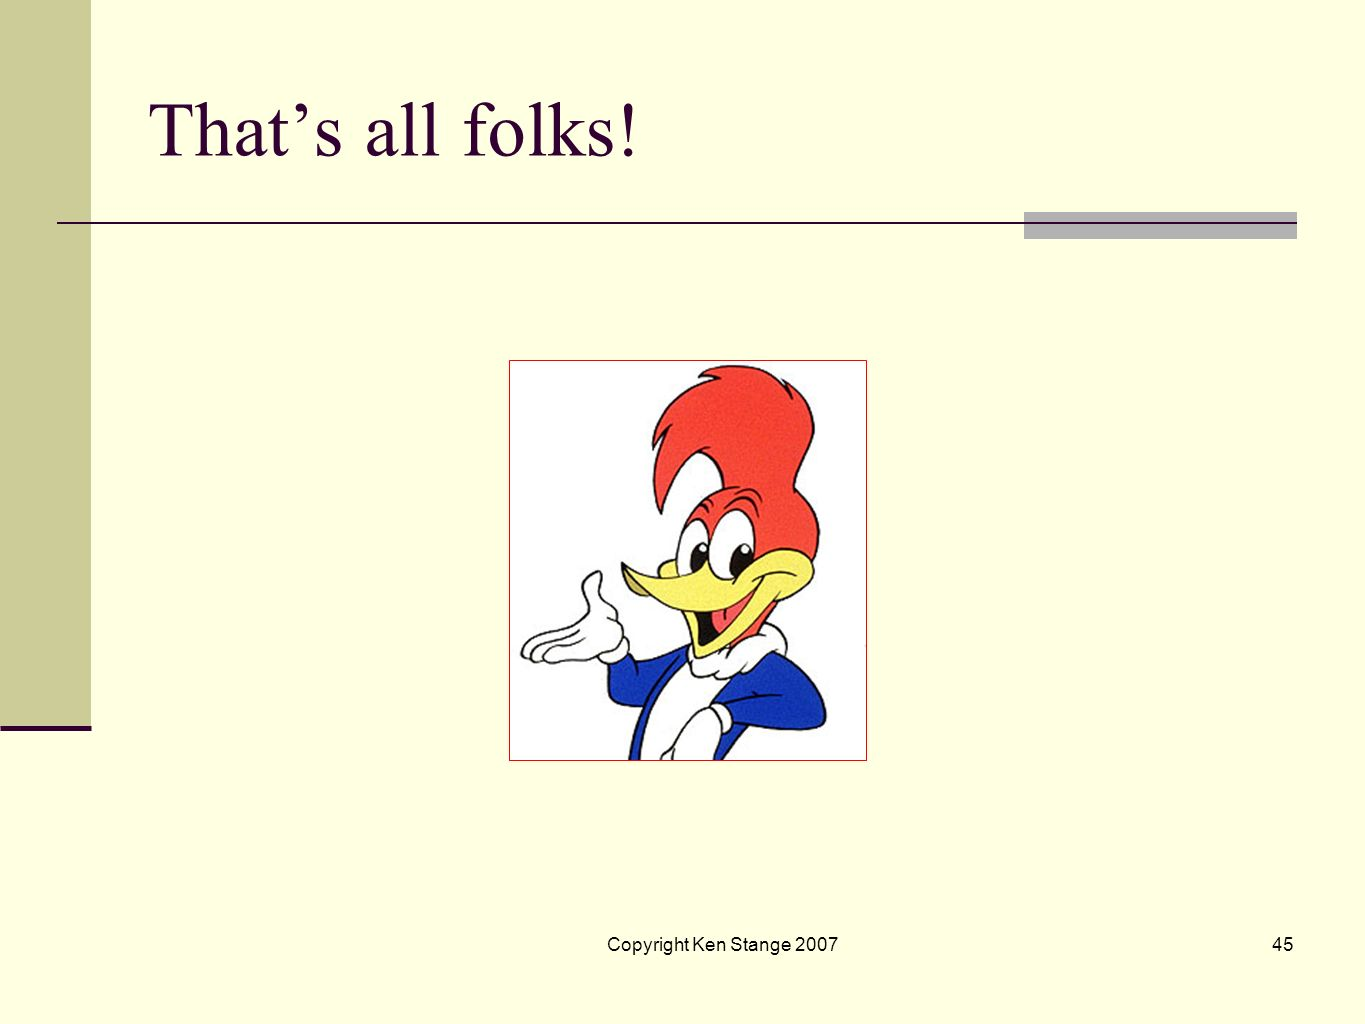 That's all folks! Copyright Ken Stange 2007 45